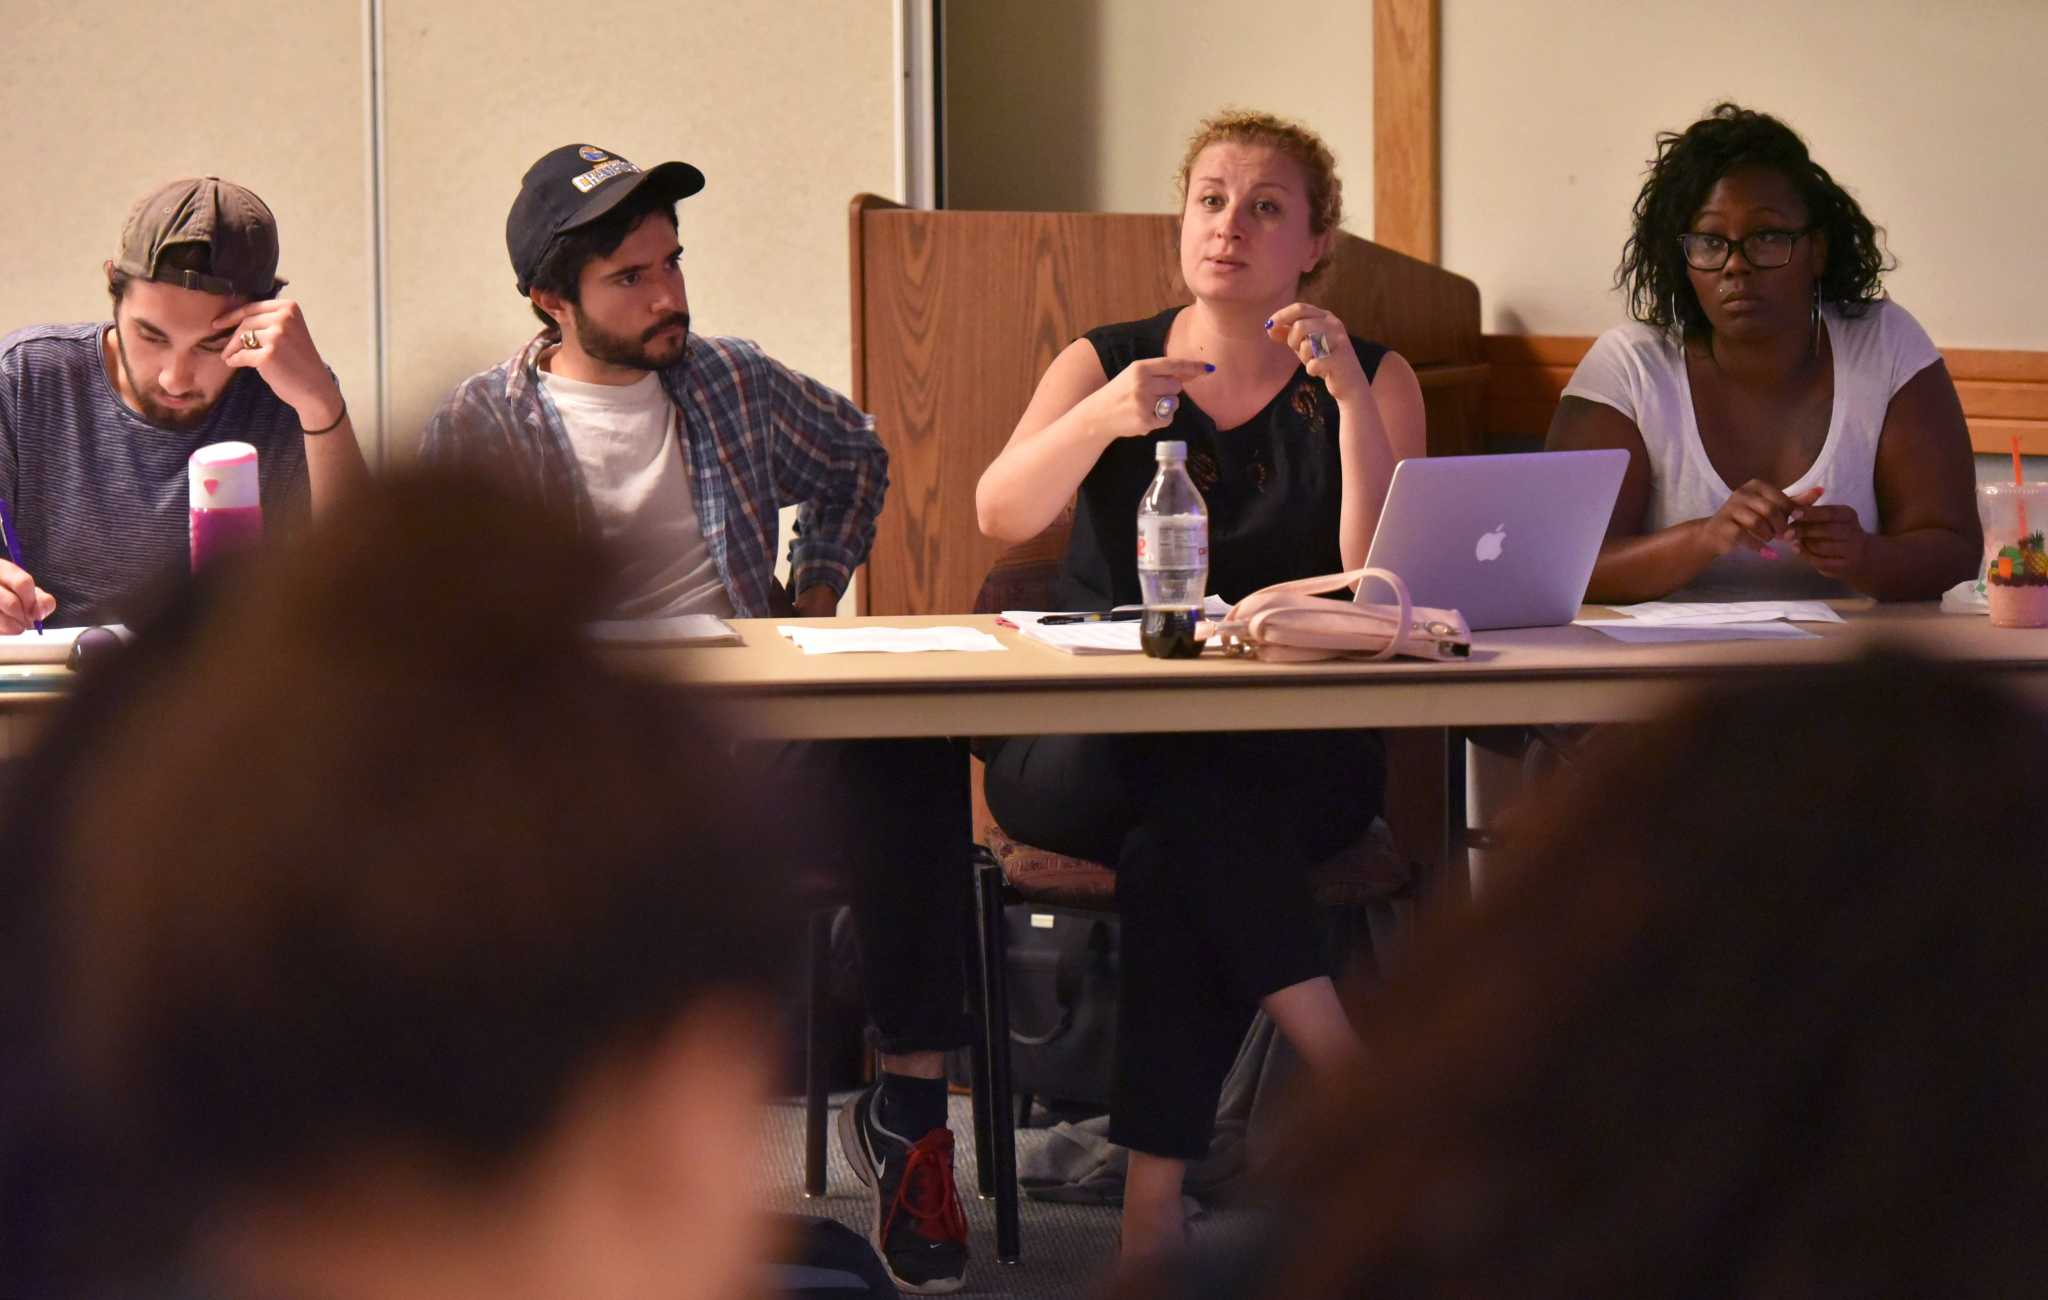 Associated Students, Inc. board of directors dialogue with students during historical organizations & finance committee meeting held by ASI at Cesar Chavez Student Center Monday, Oct. 5. (Qing Huang/Xpress)